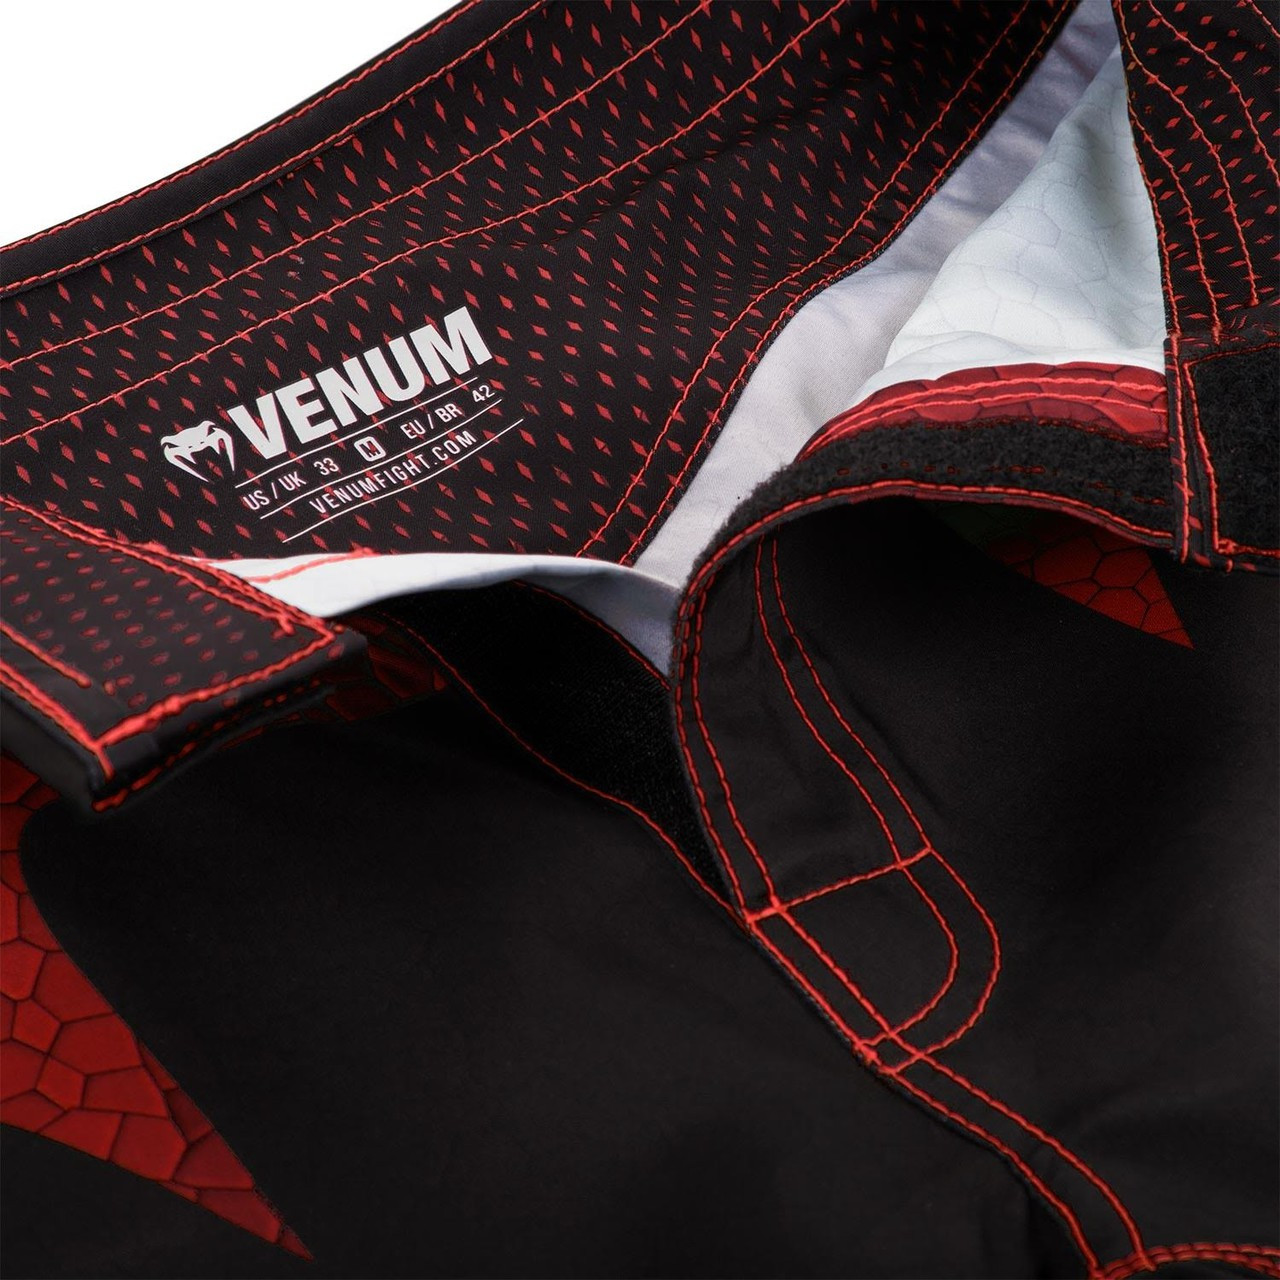 closure zoom of the new Venum Hurricane Fightshorts Amazonia Red MMA Shorts now available at www.thejiujitsushop.com  Top MMA and Grappling Shorts  Enjoy Free Shipping from The Jiu Jitsu Shop today!